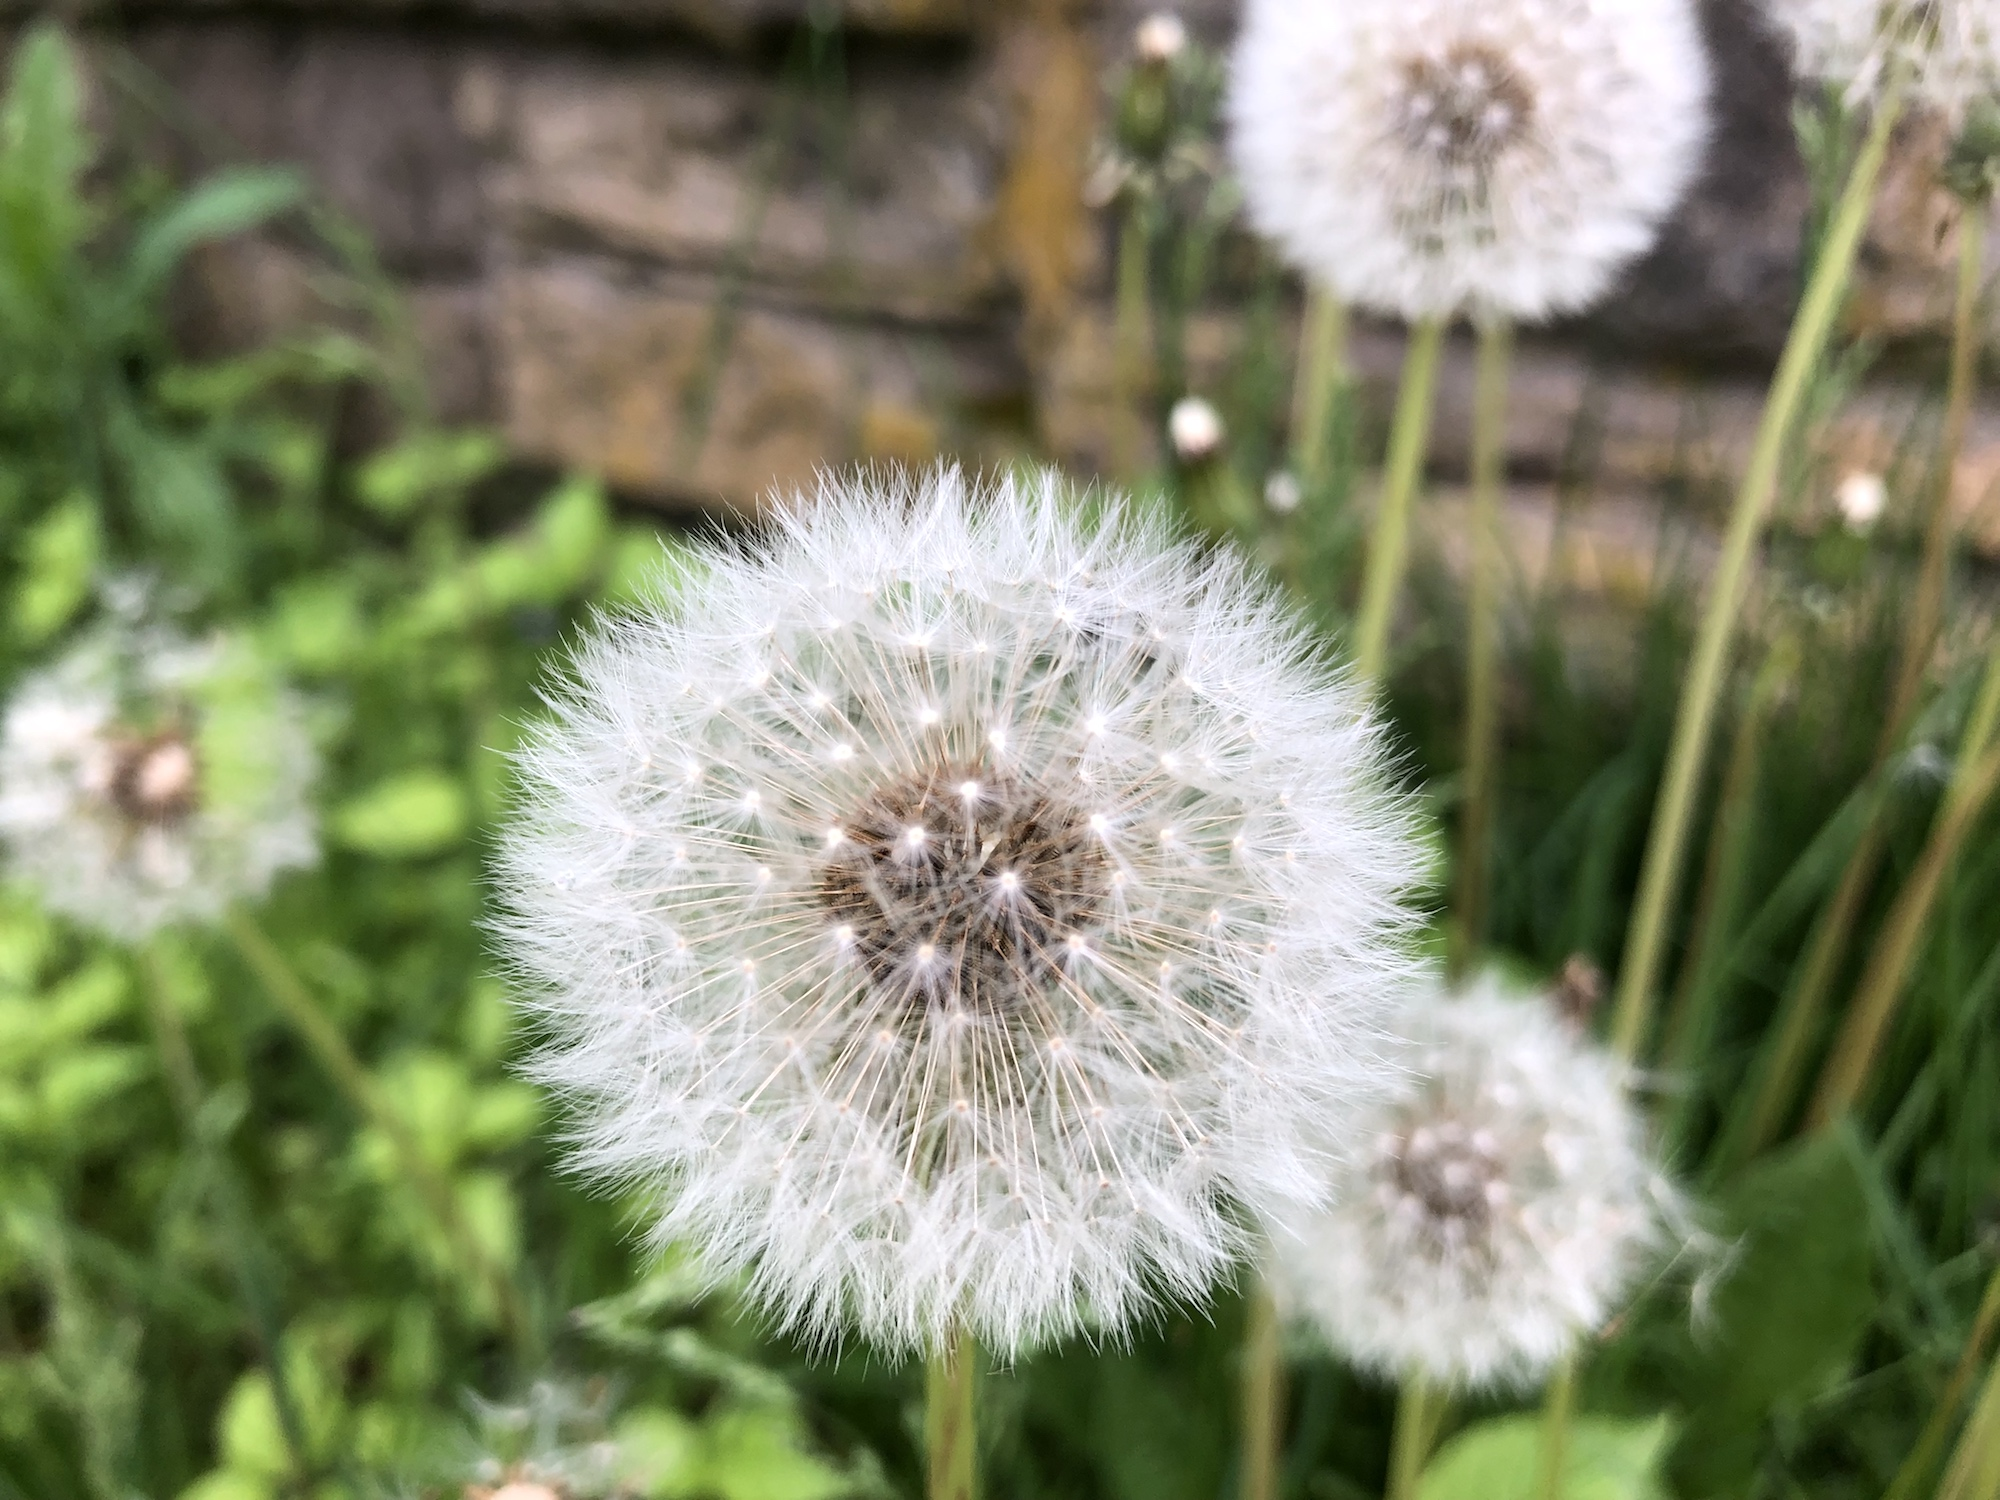 Dandelion puffballs near Duck Pond wall on May 30, 2019.